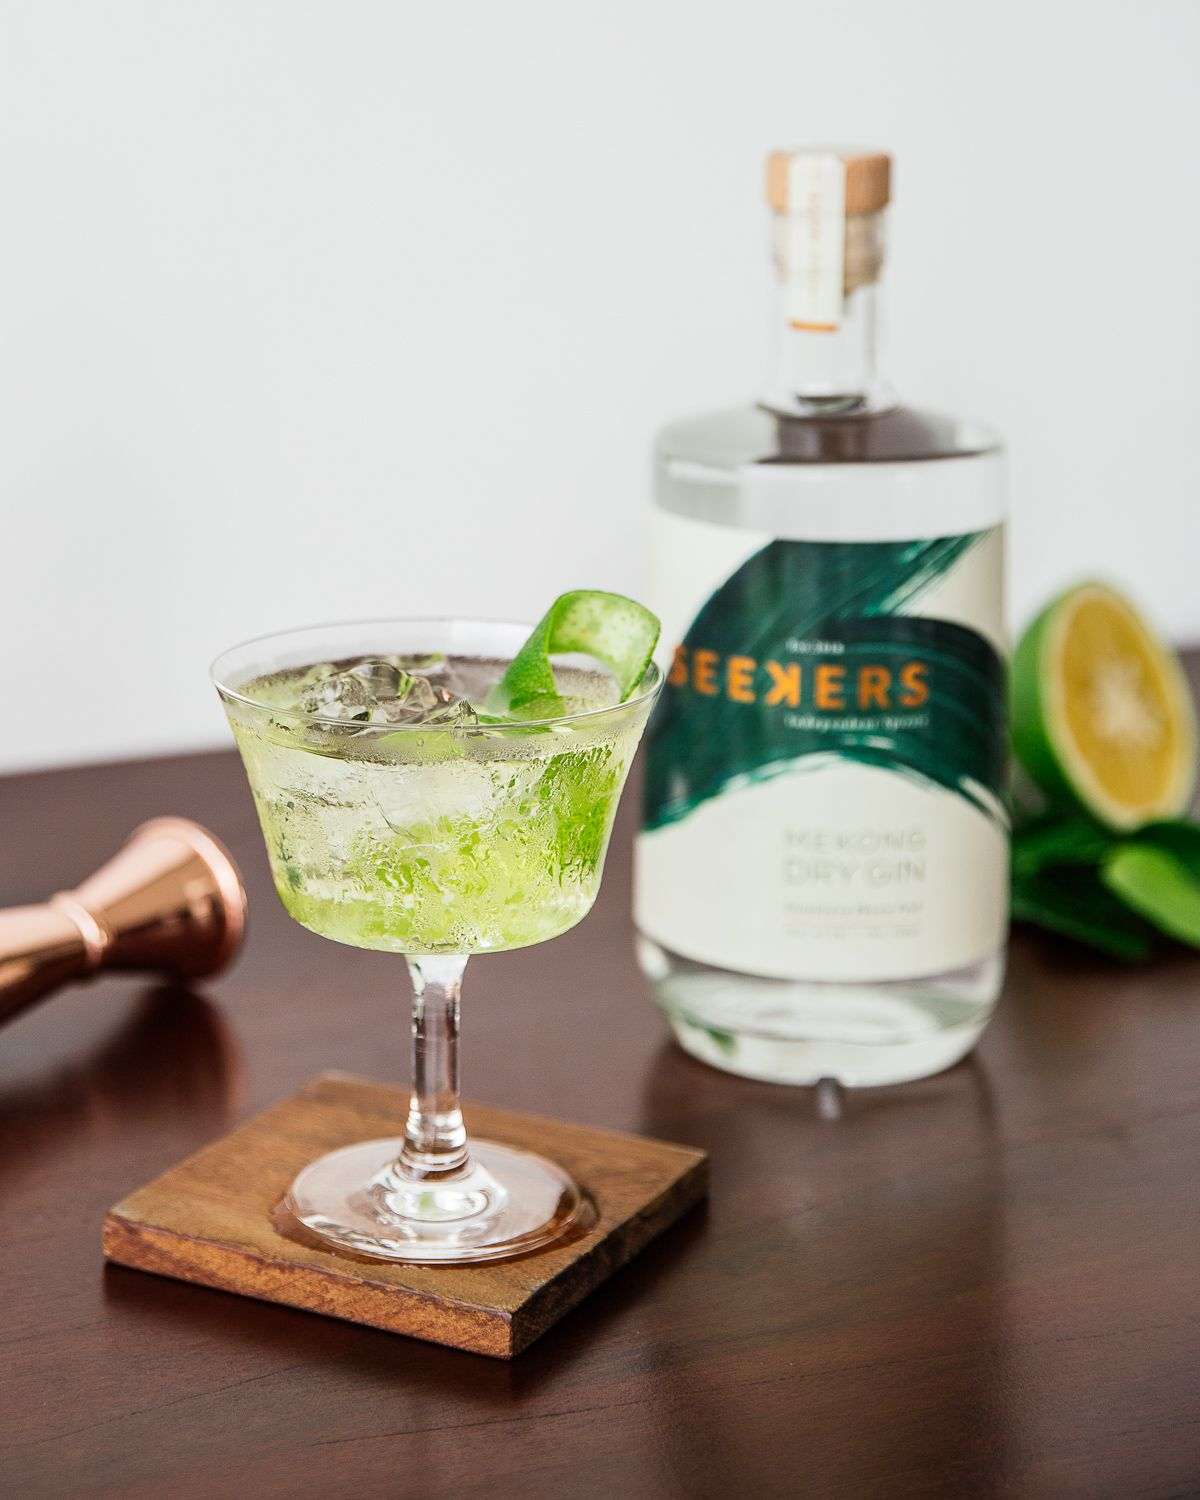 Seekers White Negroni - Bold, complex, seductive. A Seekers twist on a timeless classic.30ml Seekers Mekong Dry Gin20ml Lillet Blanc10ml SuzeAdd all the ingredients into a mixing glass with ice and stir. Strain into a rocks glass. Add ice. Garnish with a green orange twist.